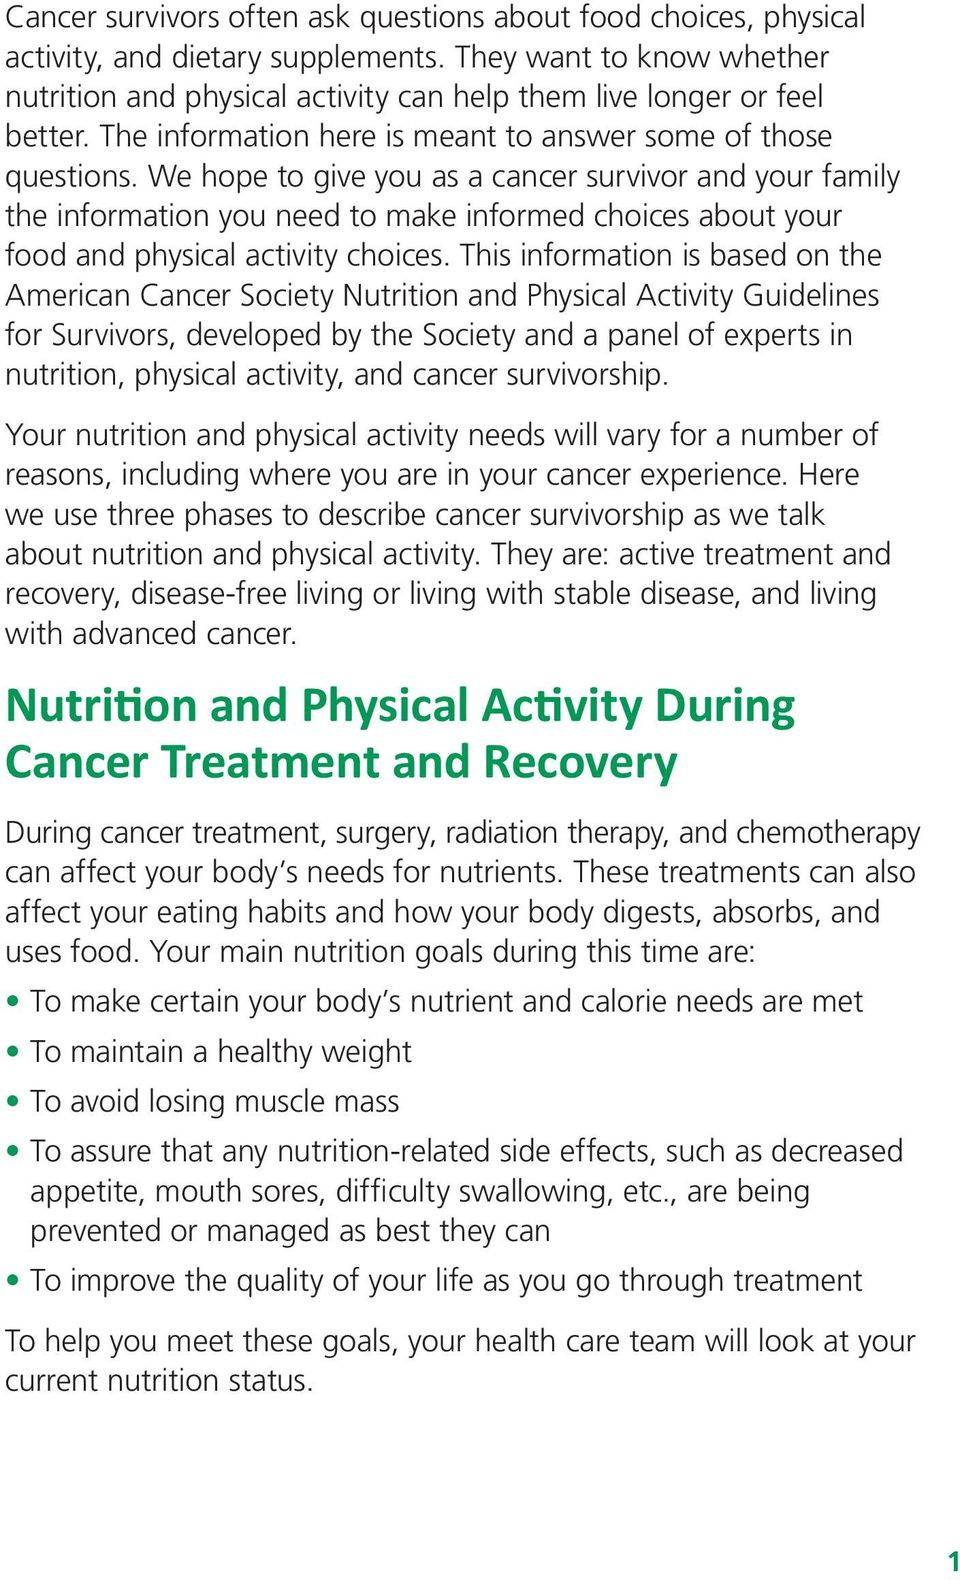 We hope to give you as a cancer survivor and your family the information you need to make informed choices about your food and physical activity choices.